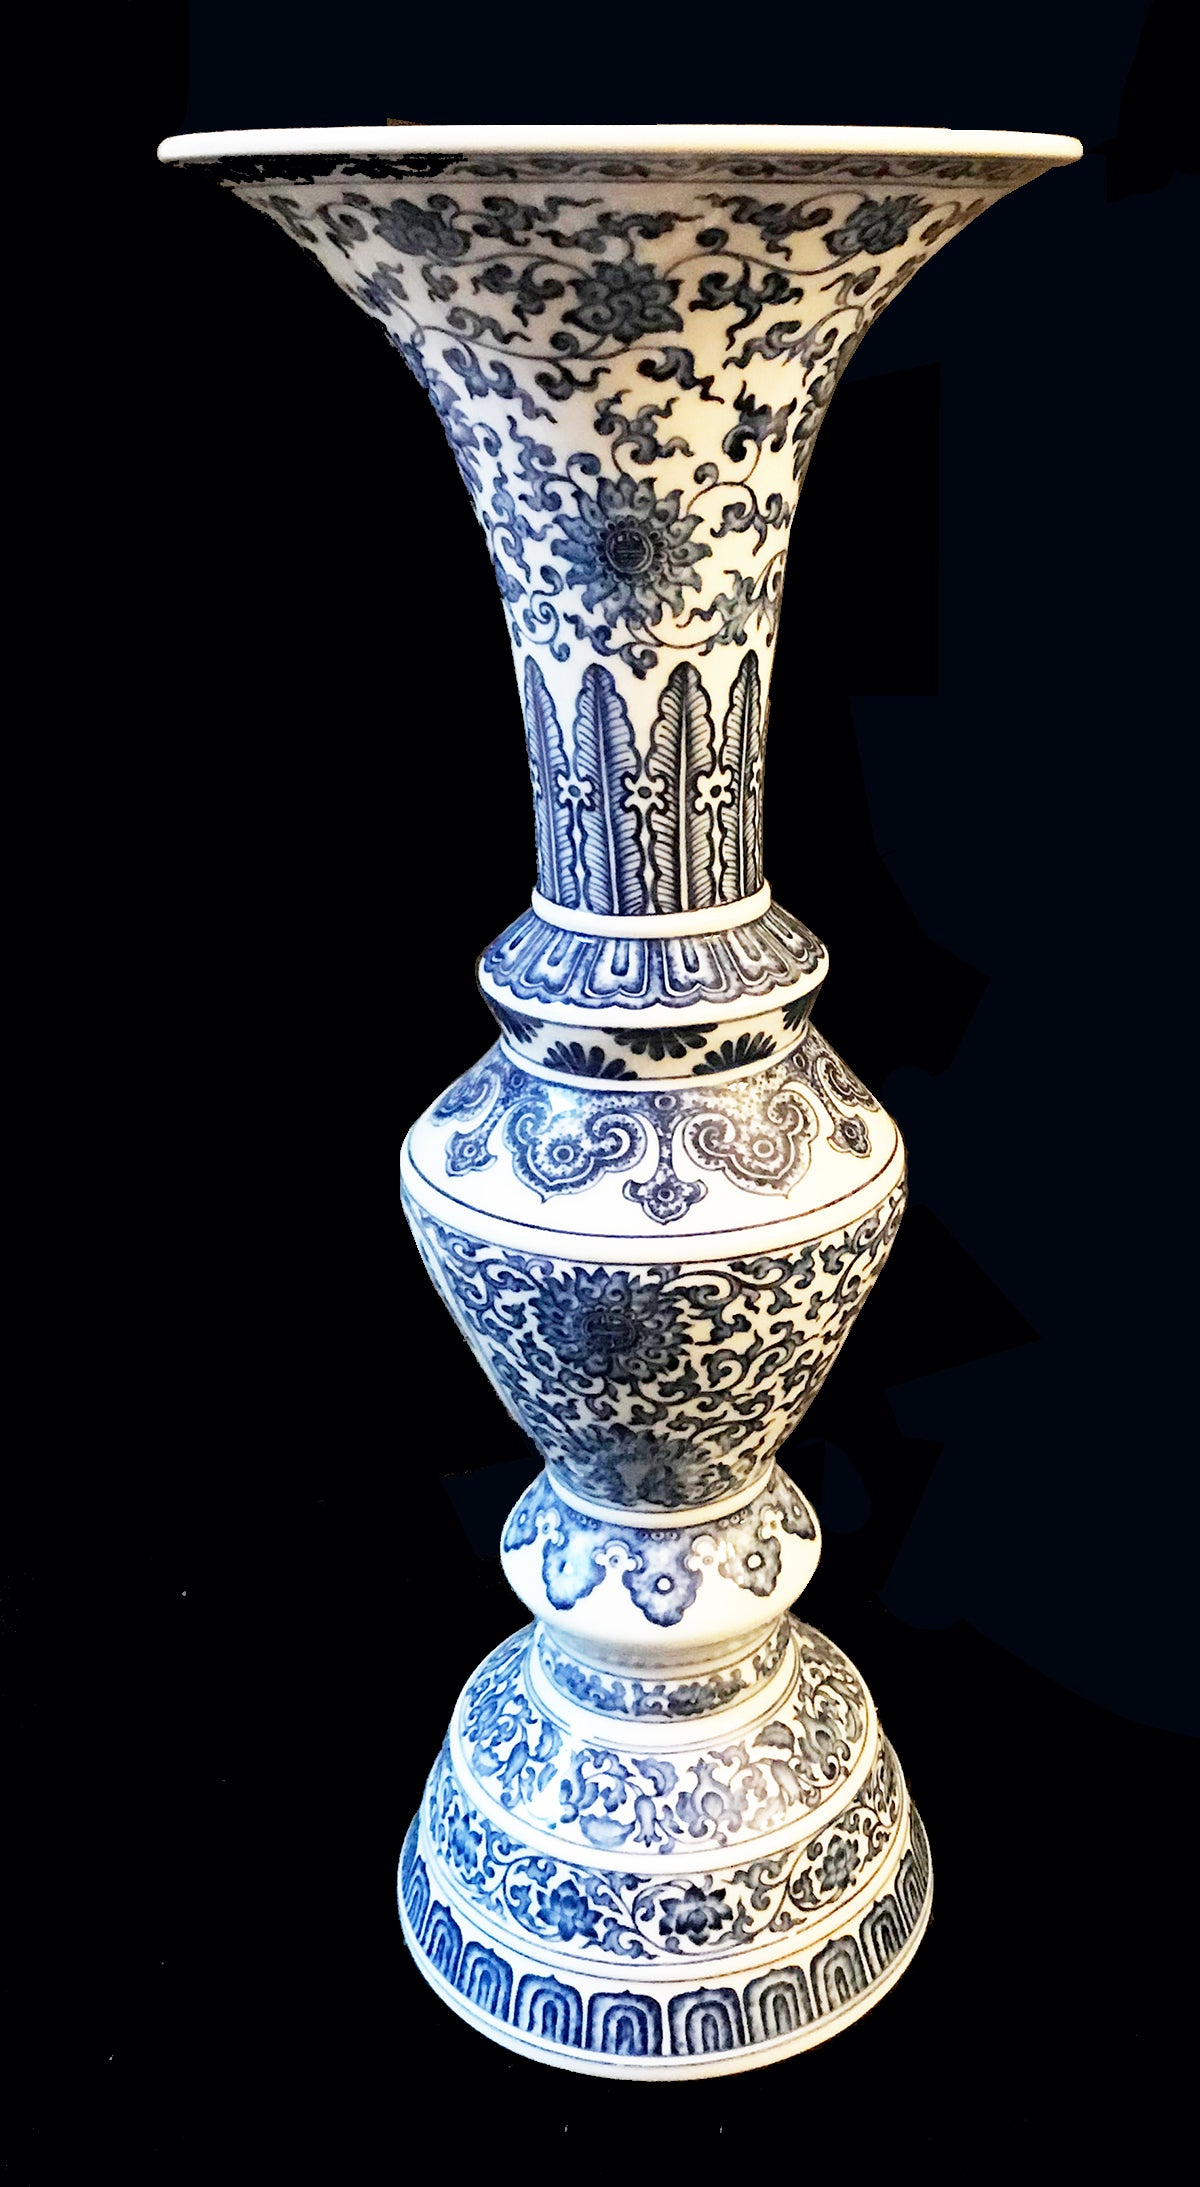 Chinese Republic Period Porcelain Gu-Shaped Vase Calligraphic Inscription